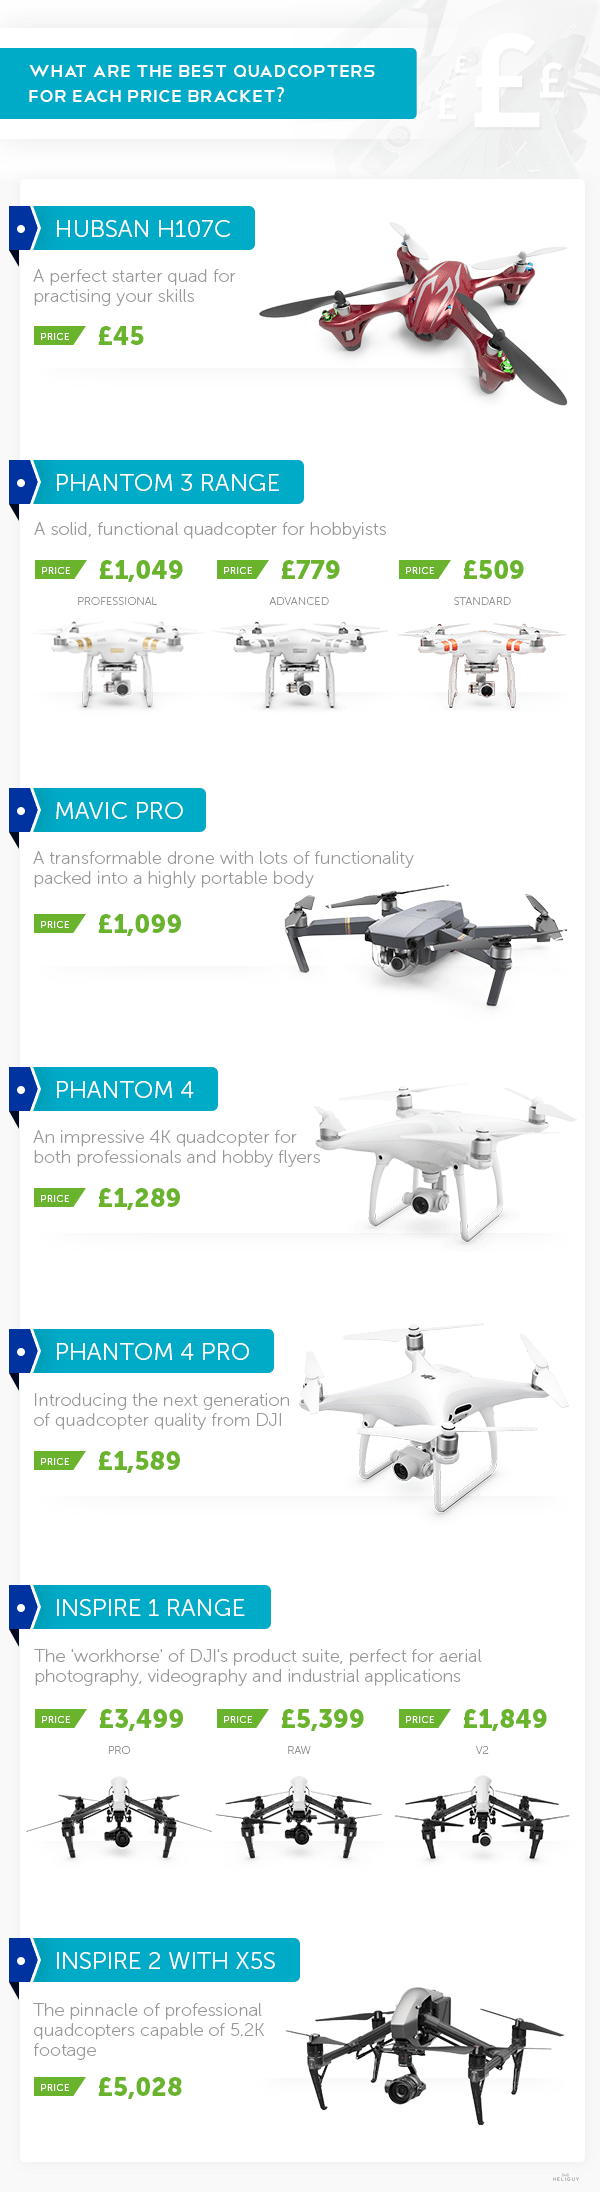 What Are The Best Quadcopters For Each Price Bracket?